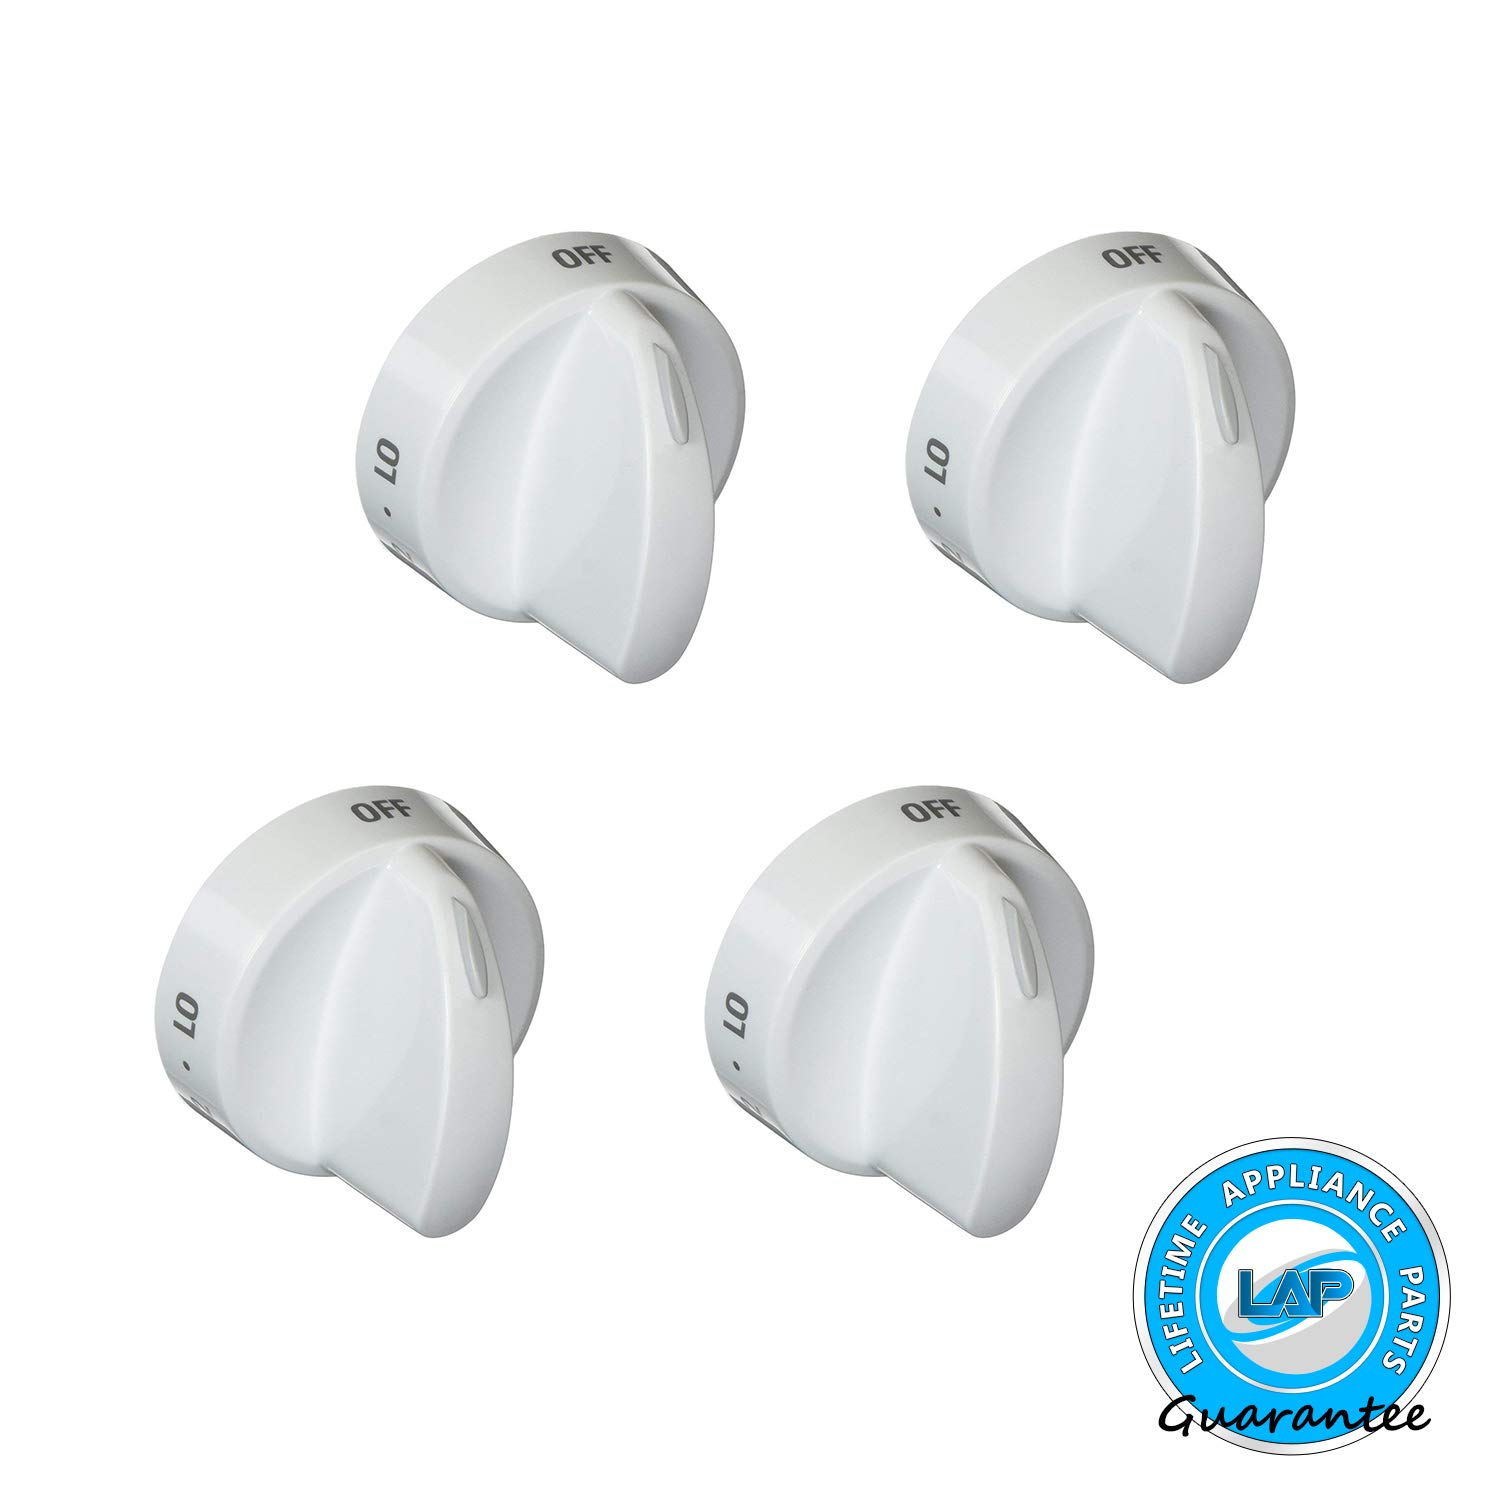 Lifetime Appliance 4 x 316442512 Surface Burner Knob Compatible with Frigidaire, Kenmore, Sears Range Oven